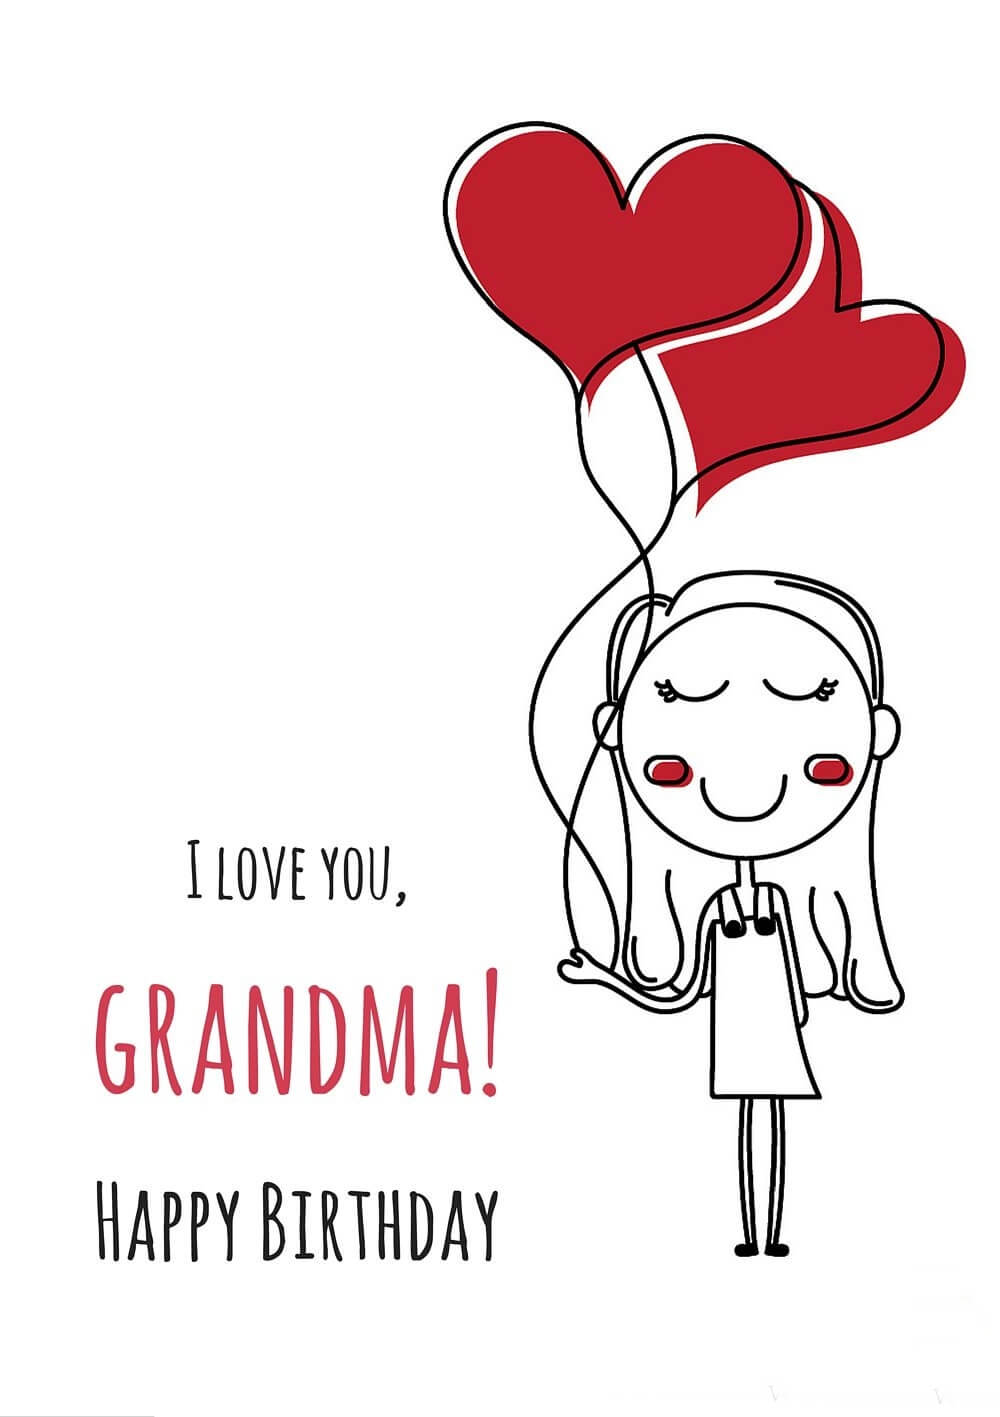 Happy Birthday Heart Wishes Grandmother